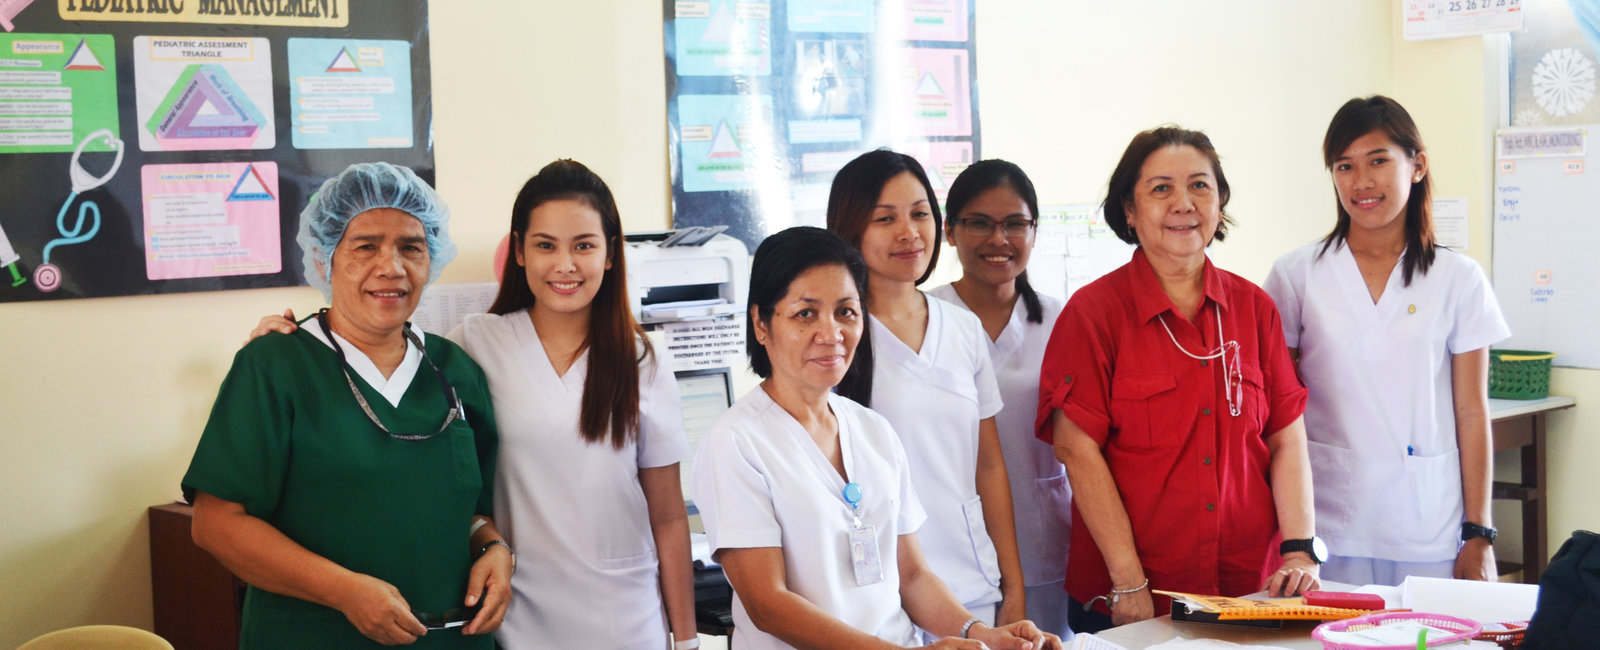 Tanya Summers - Nursing Electives in Iloilo, the Philippines